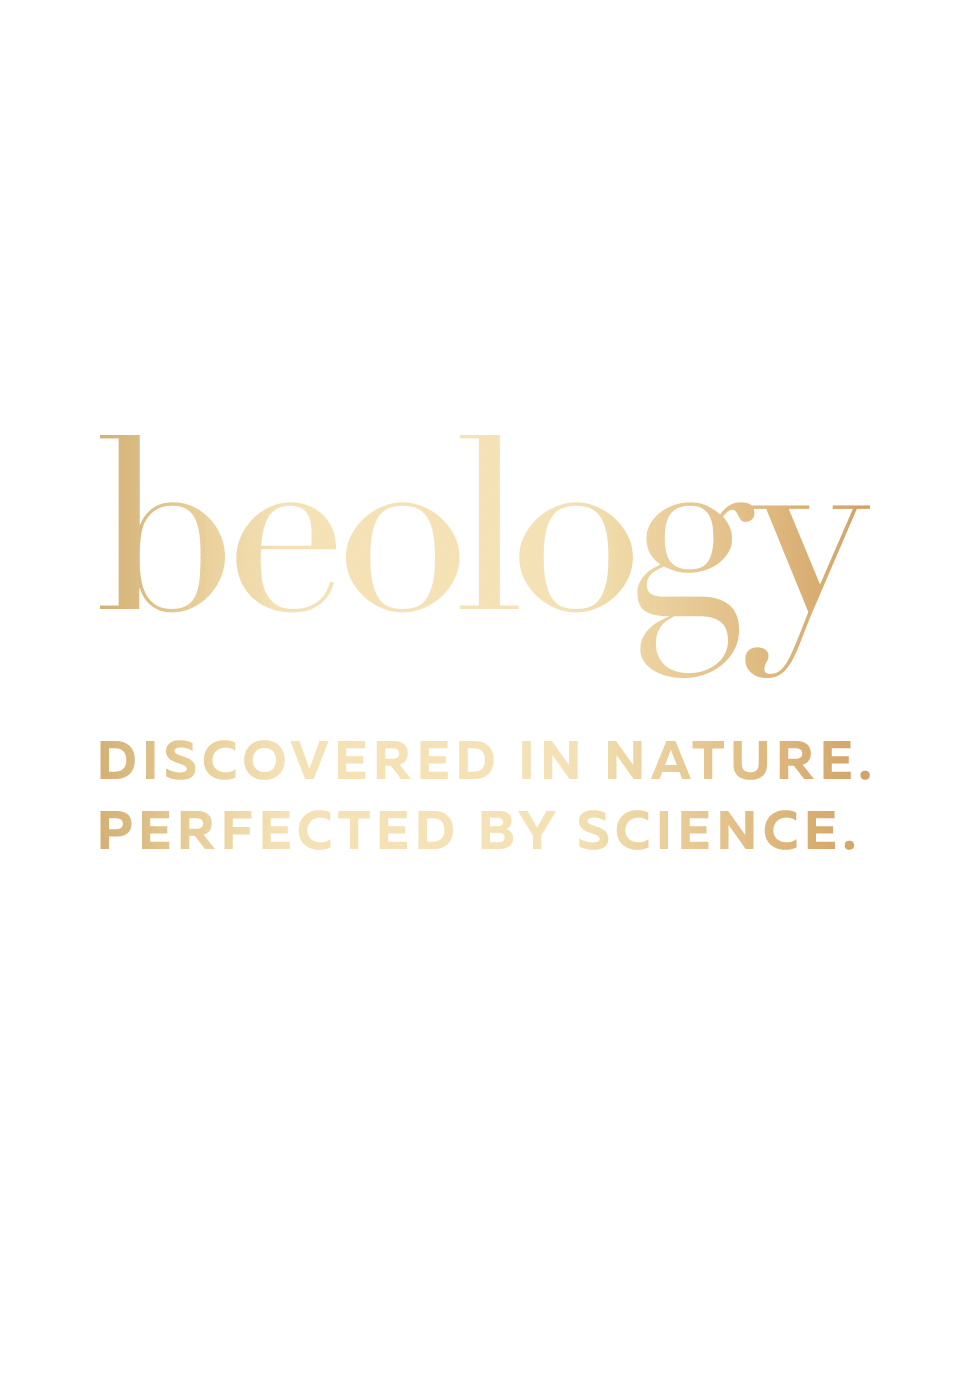 beology_com_home_logo_970x1400